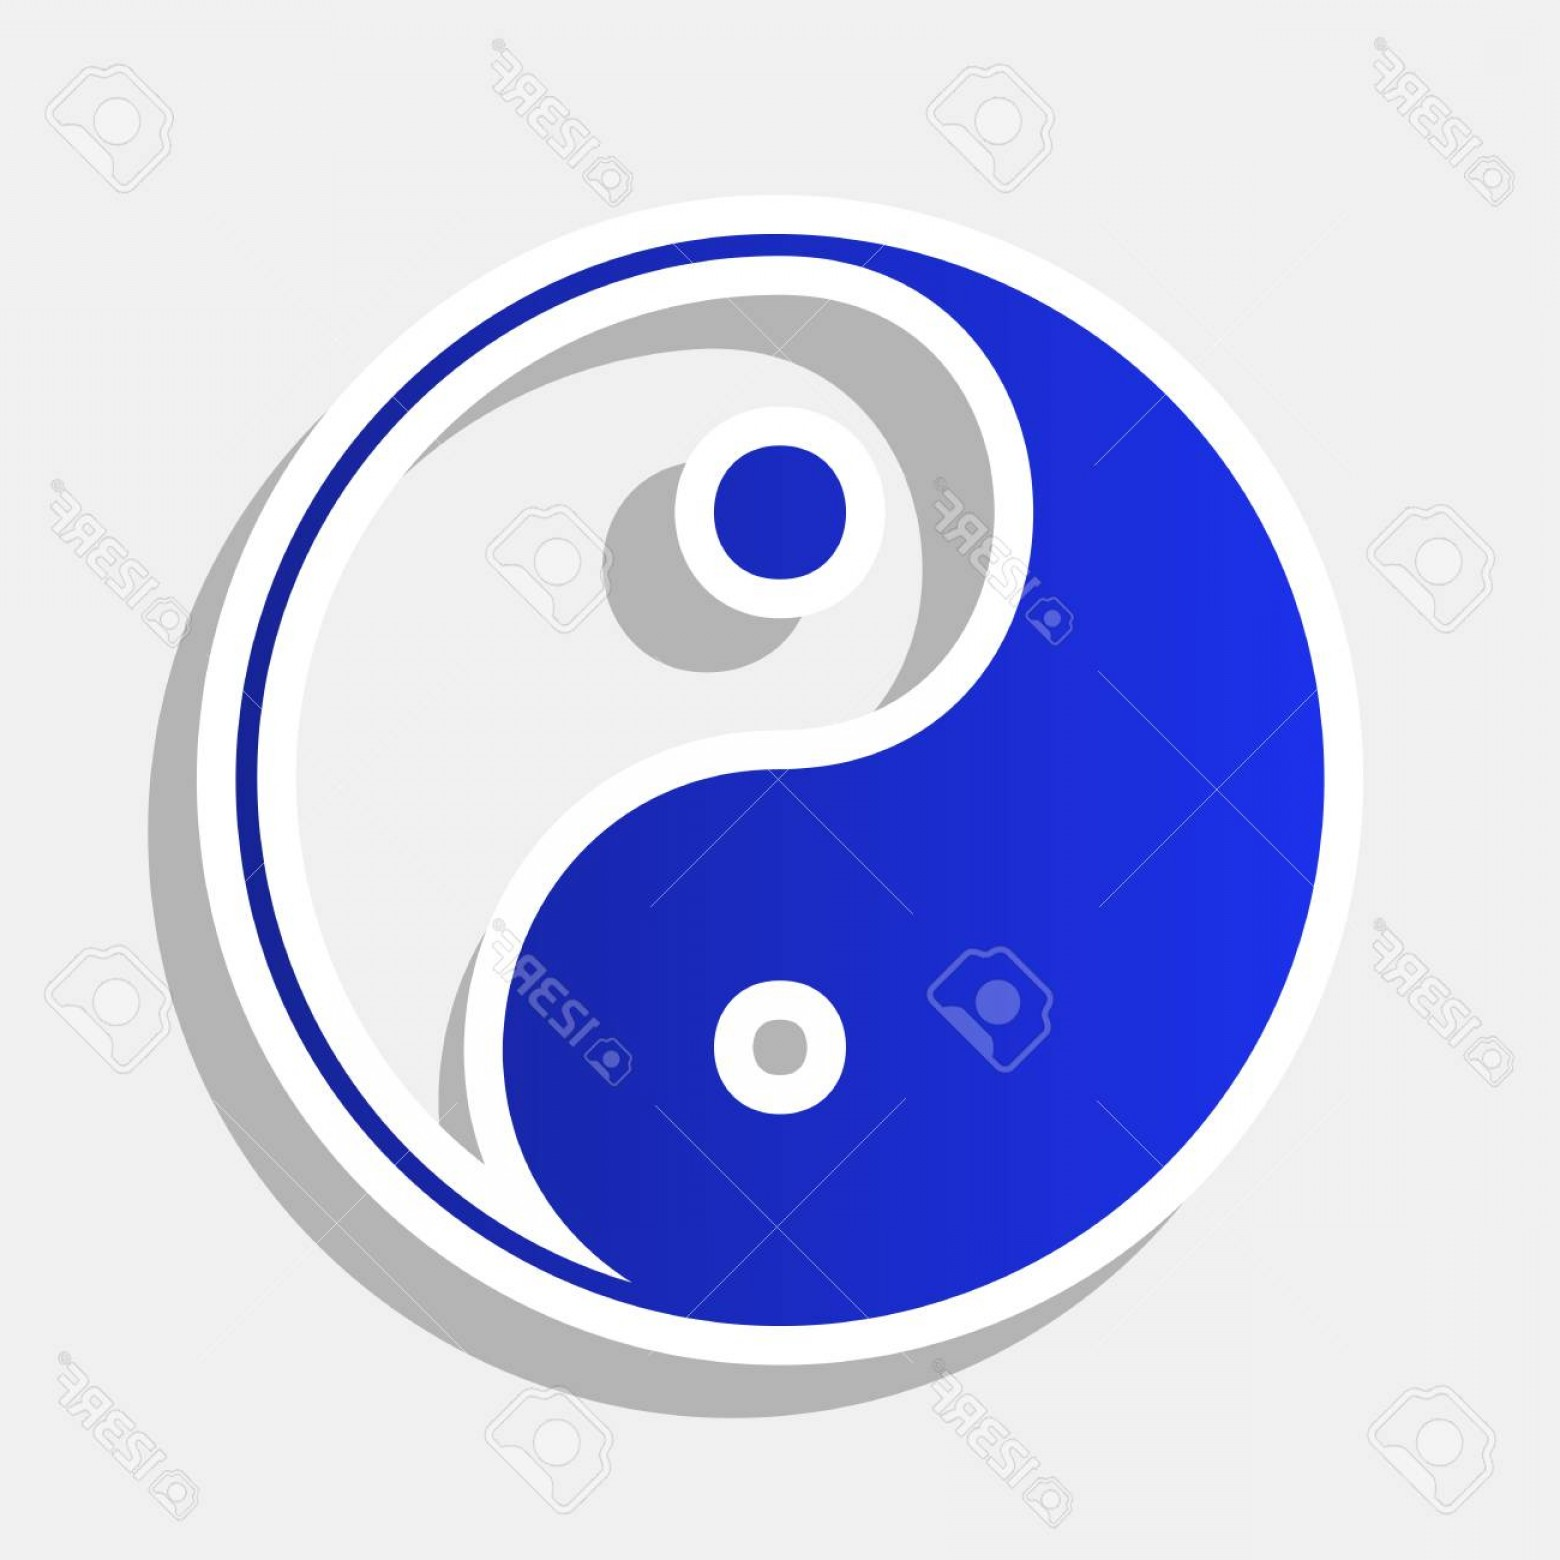 New Balance Vector: Photostock Vector Ying Yang Symbol Of Harmony And Balance Vector New Year Bluish Icon With Outside Stroke And Gray Sha